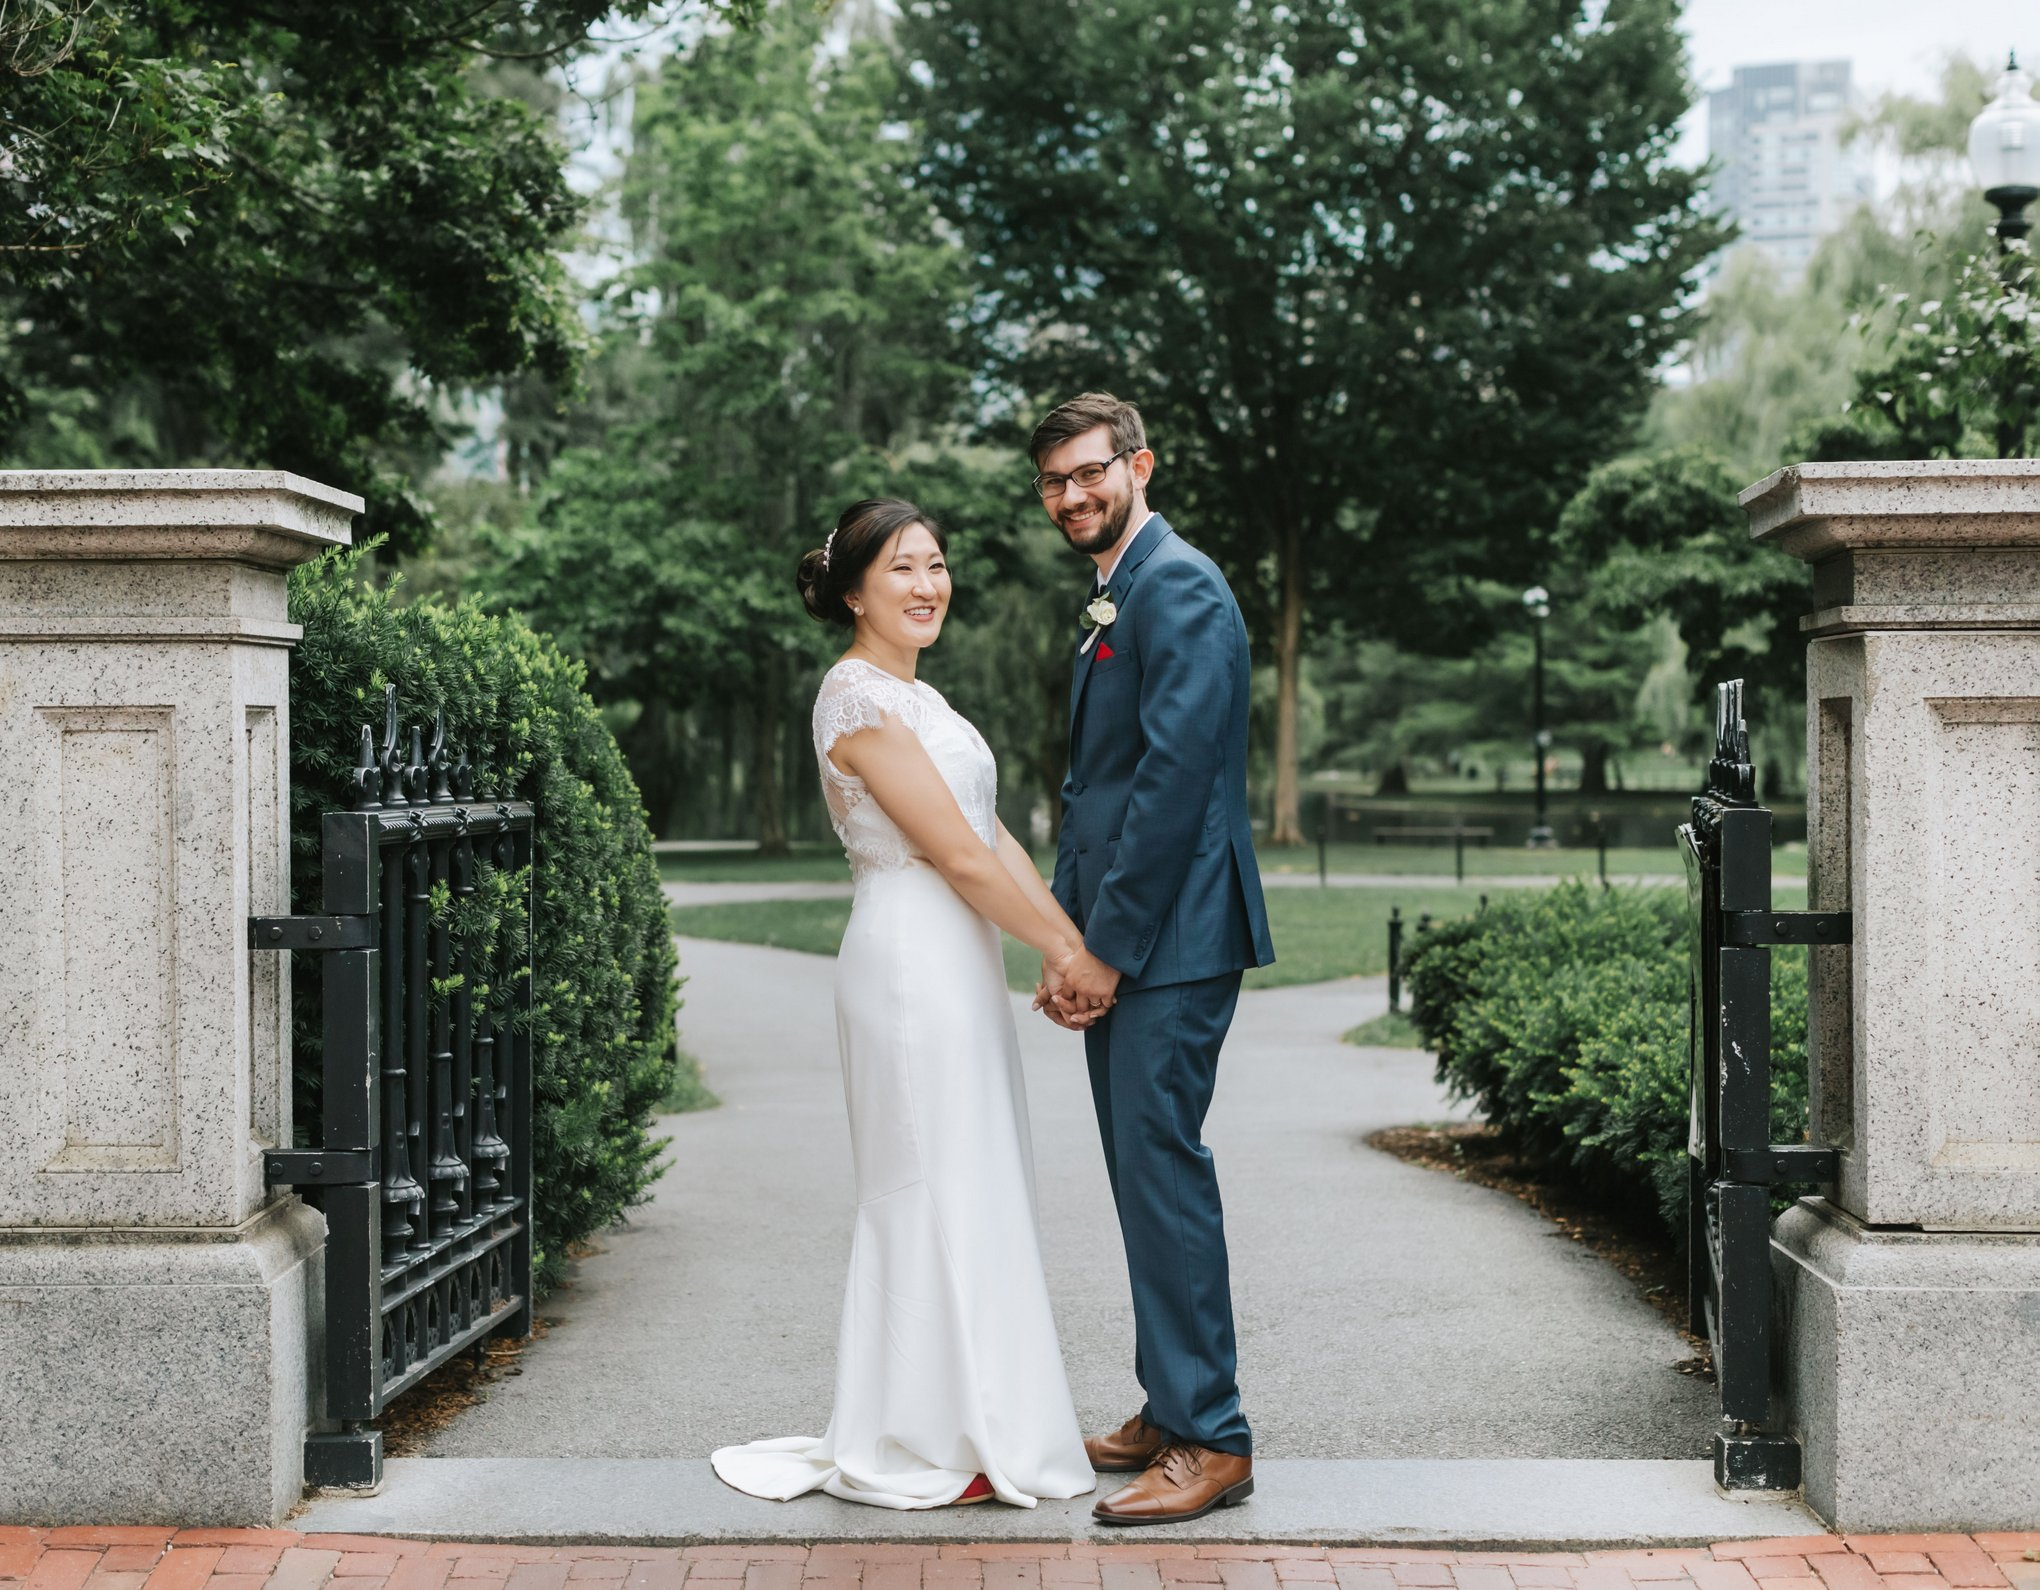 Boston-City-Hall-Elopement-Wedding-Public-Garden-Beacon-Hill-8.JPG